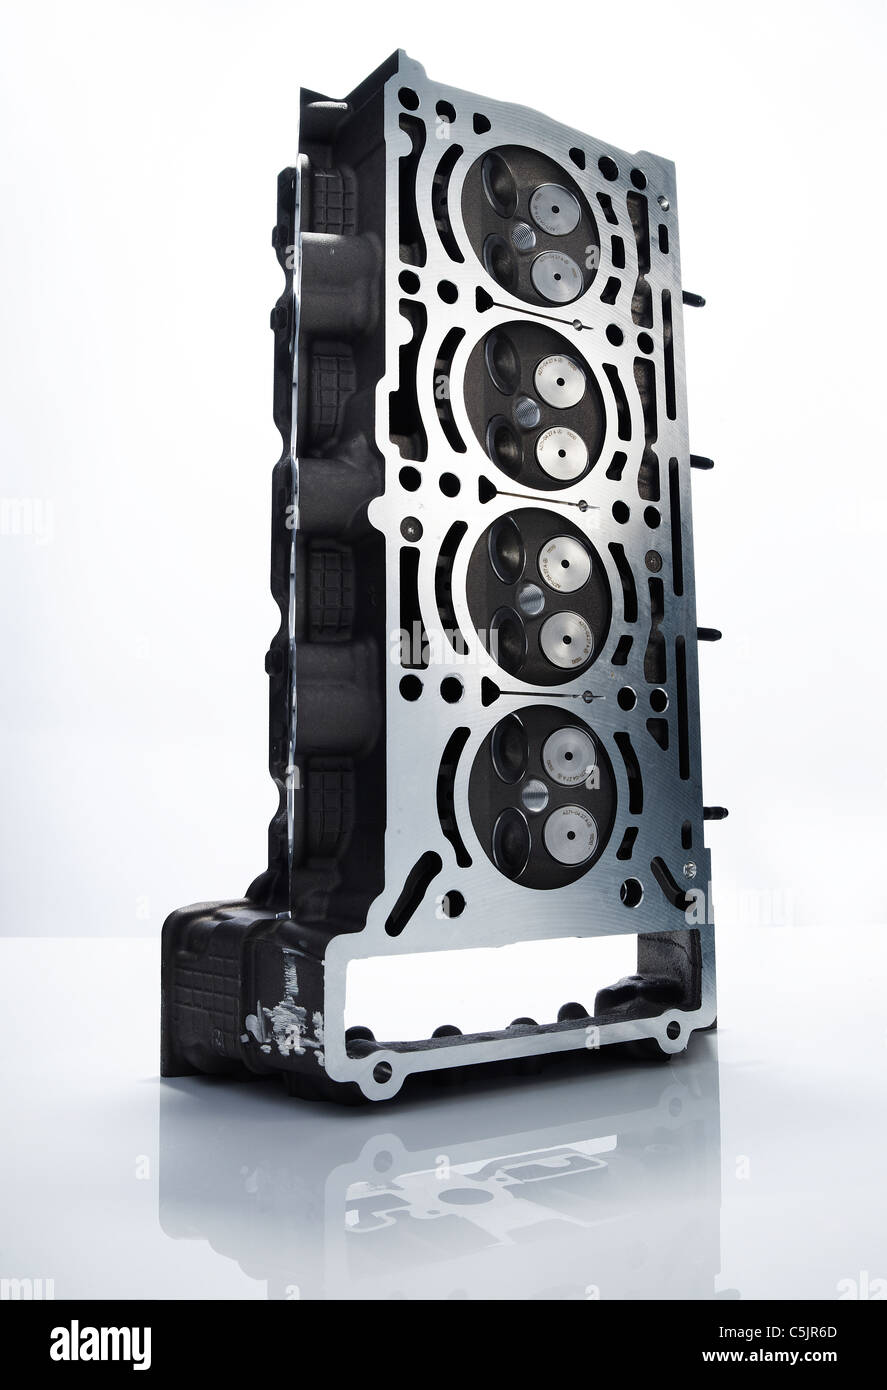 Car Engine Block On White Perspex With Reflection Stock Photo